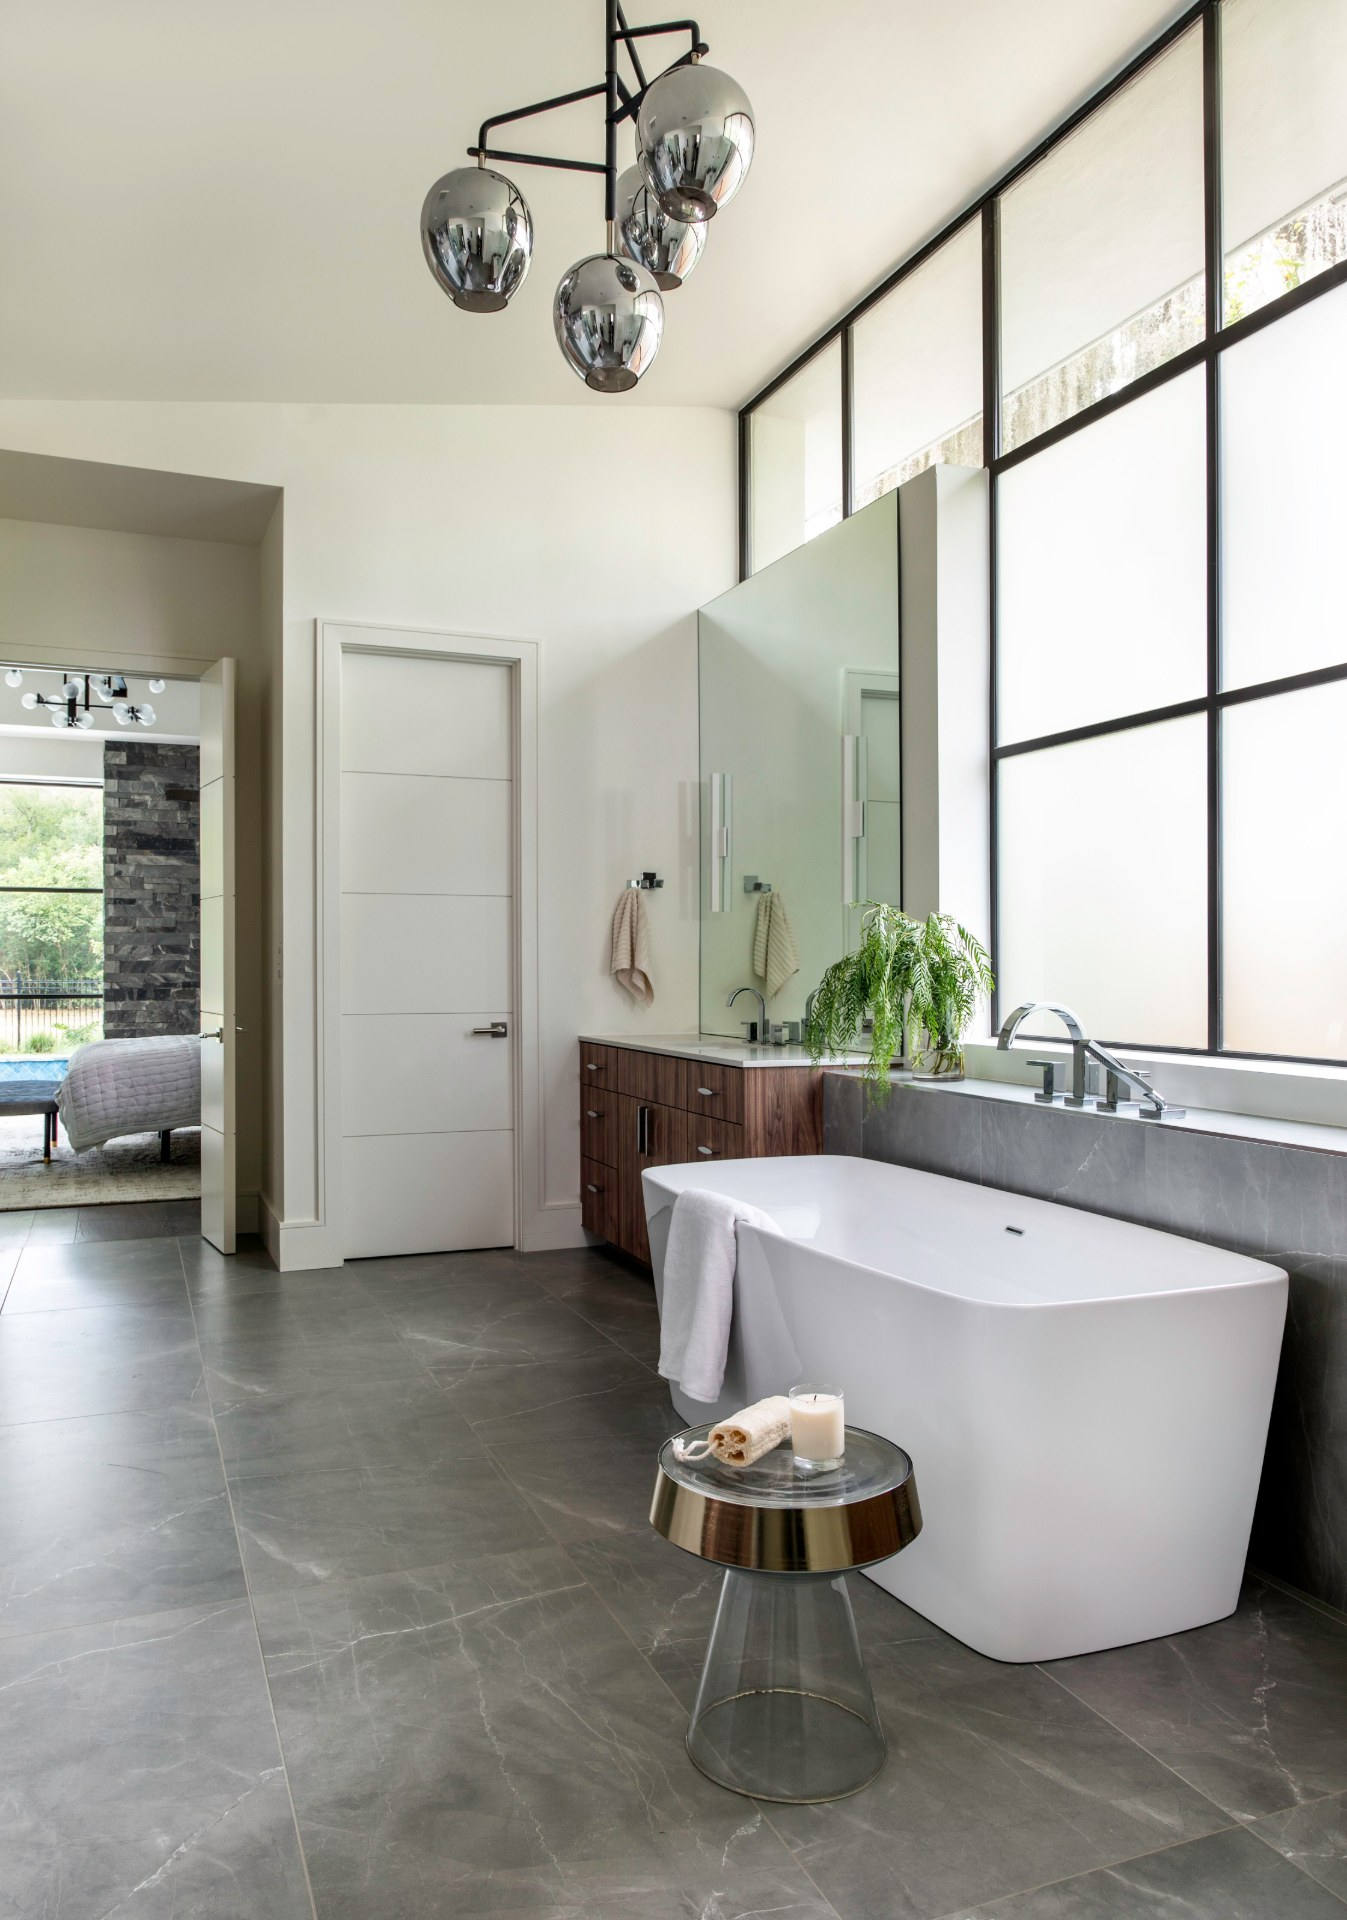 Master bathroom featuring gray stone floors and massive windows